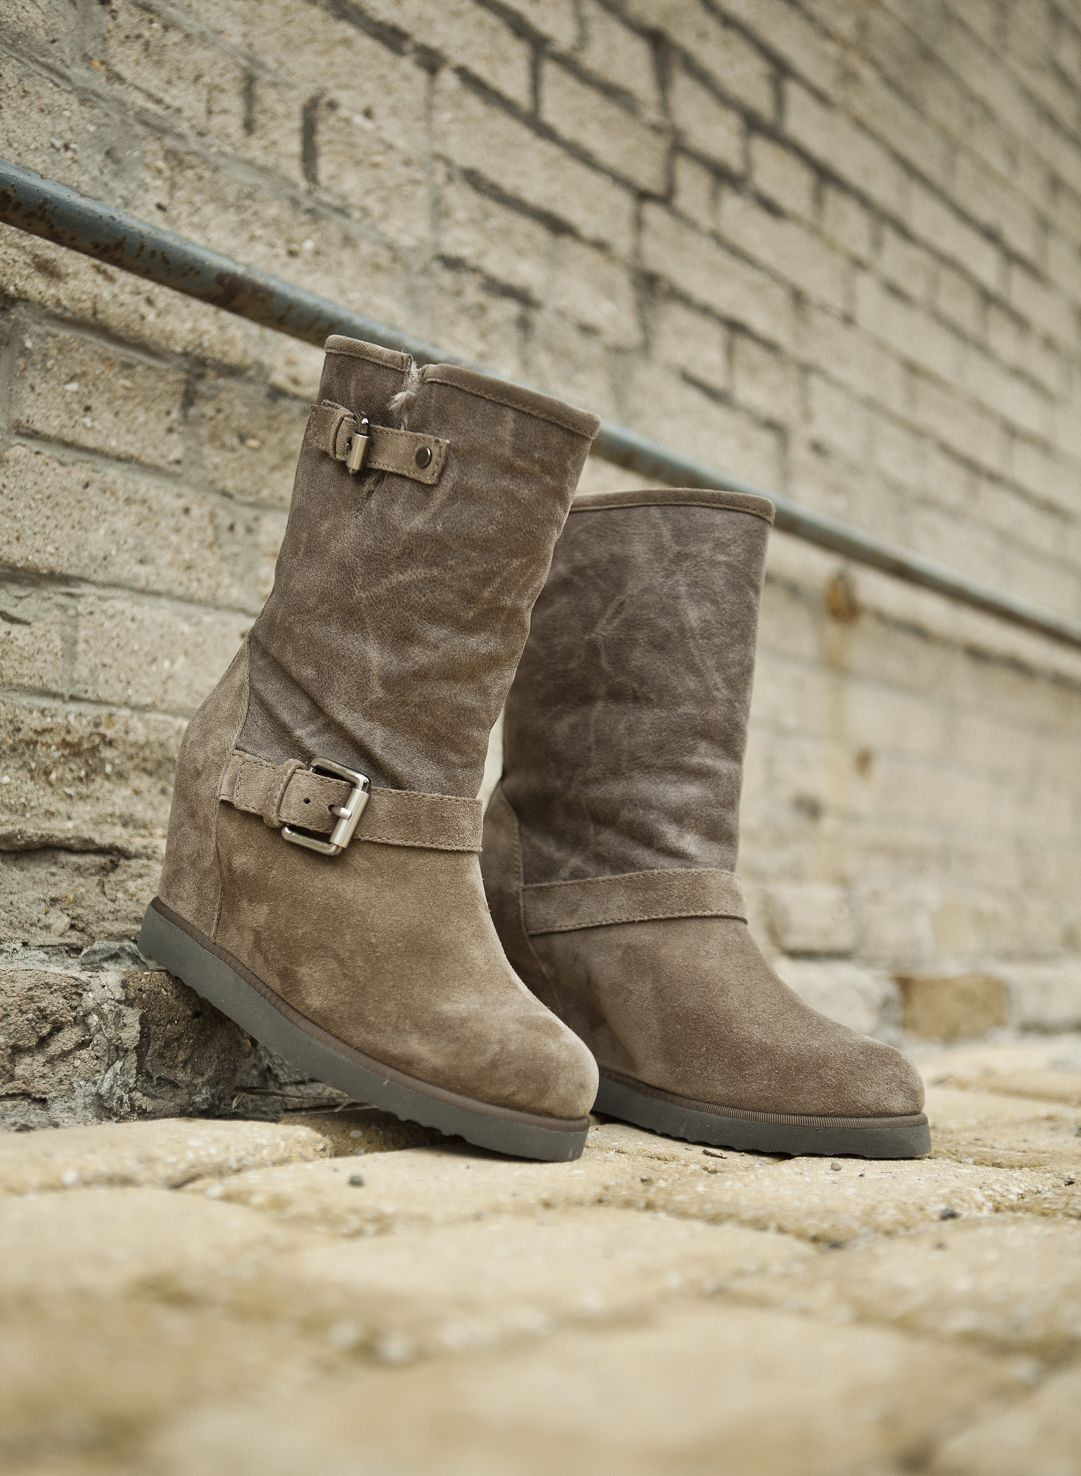 #Fred #Ankle #Boots